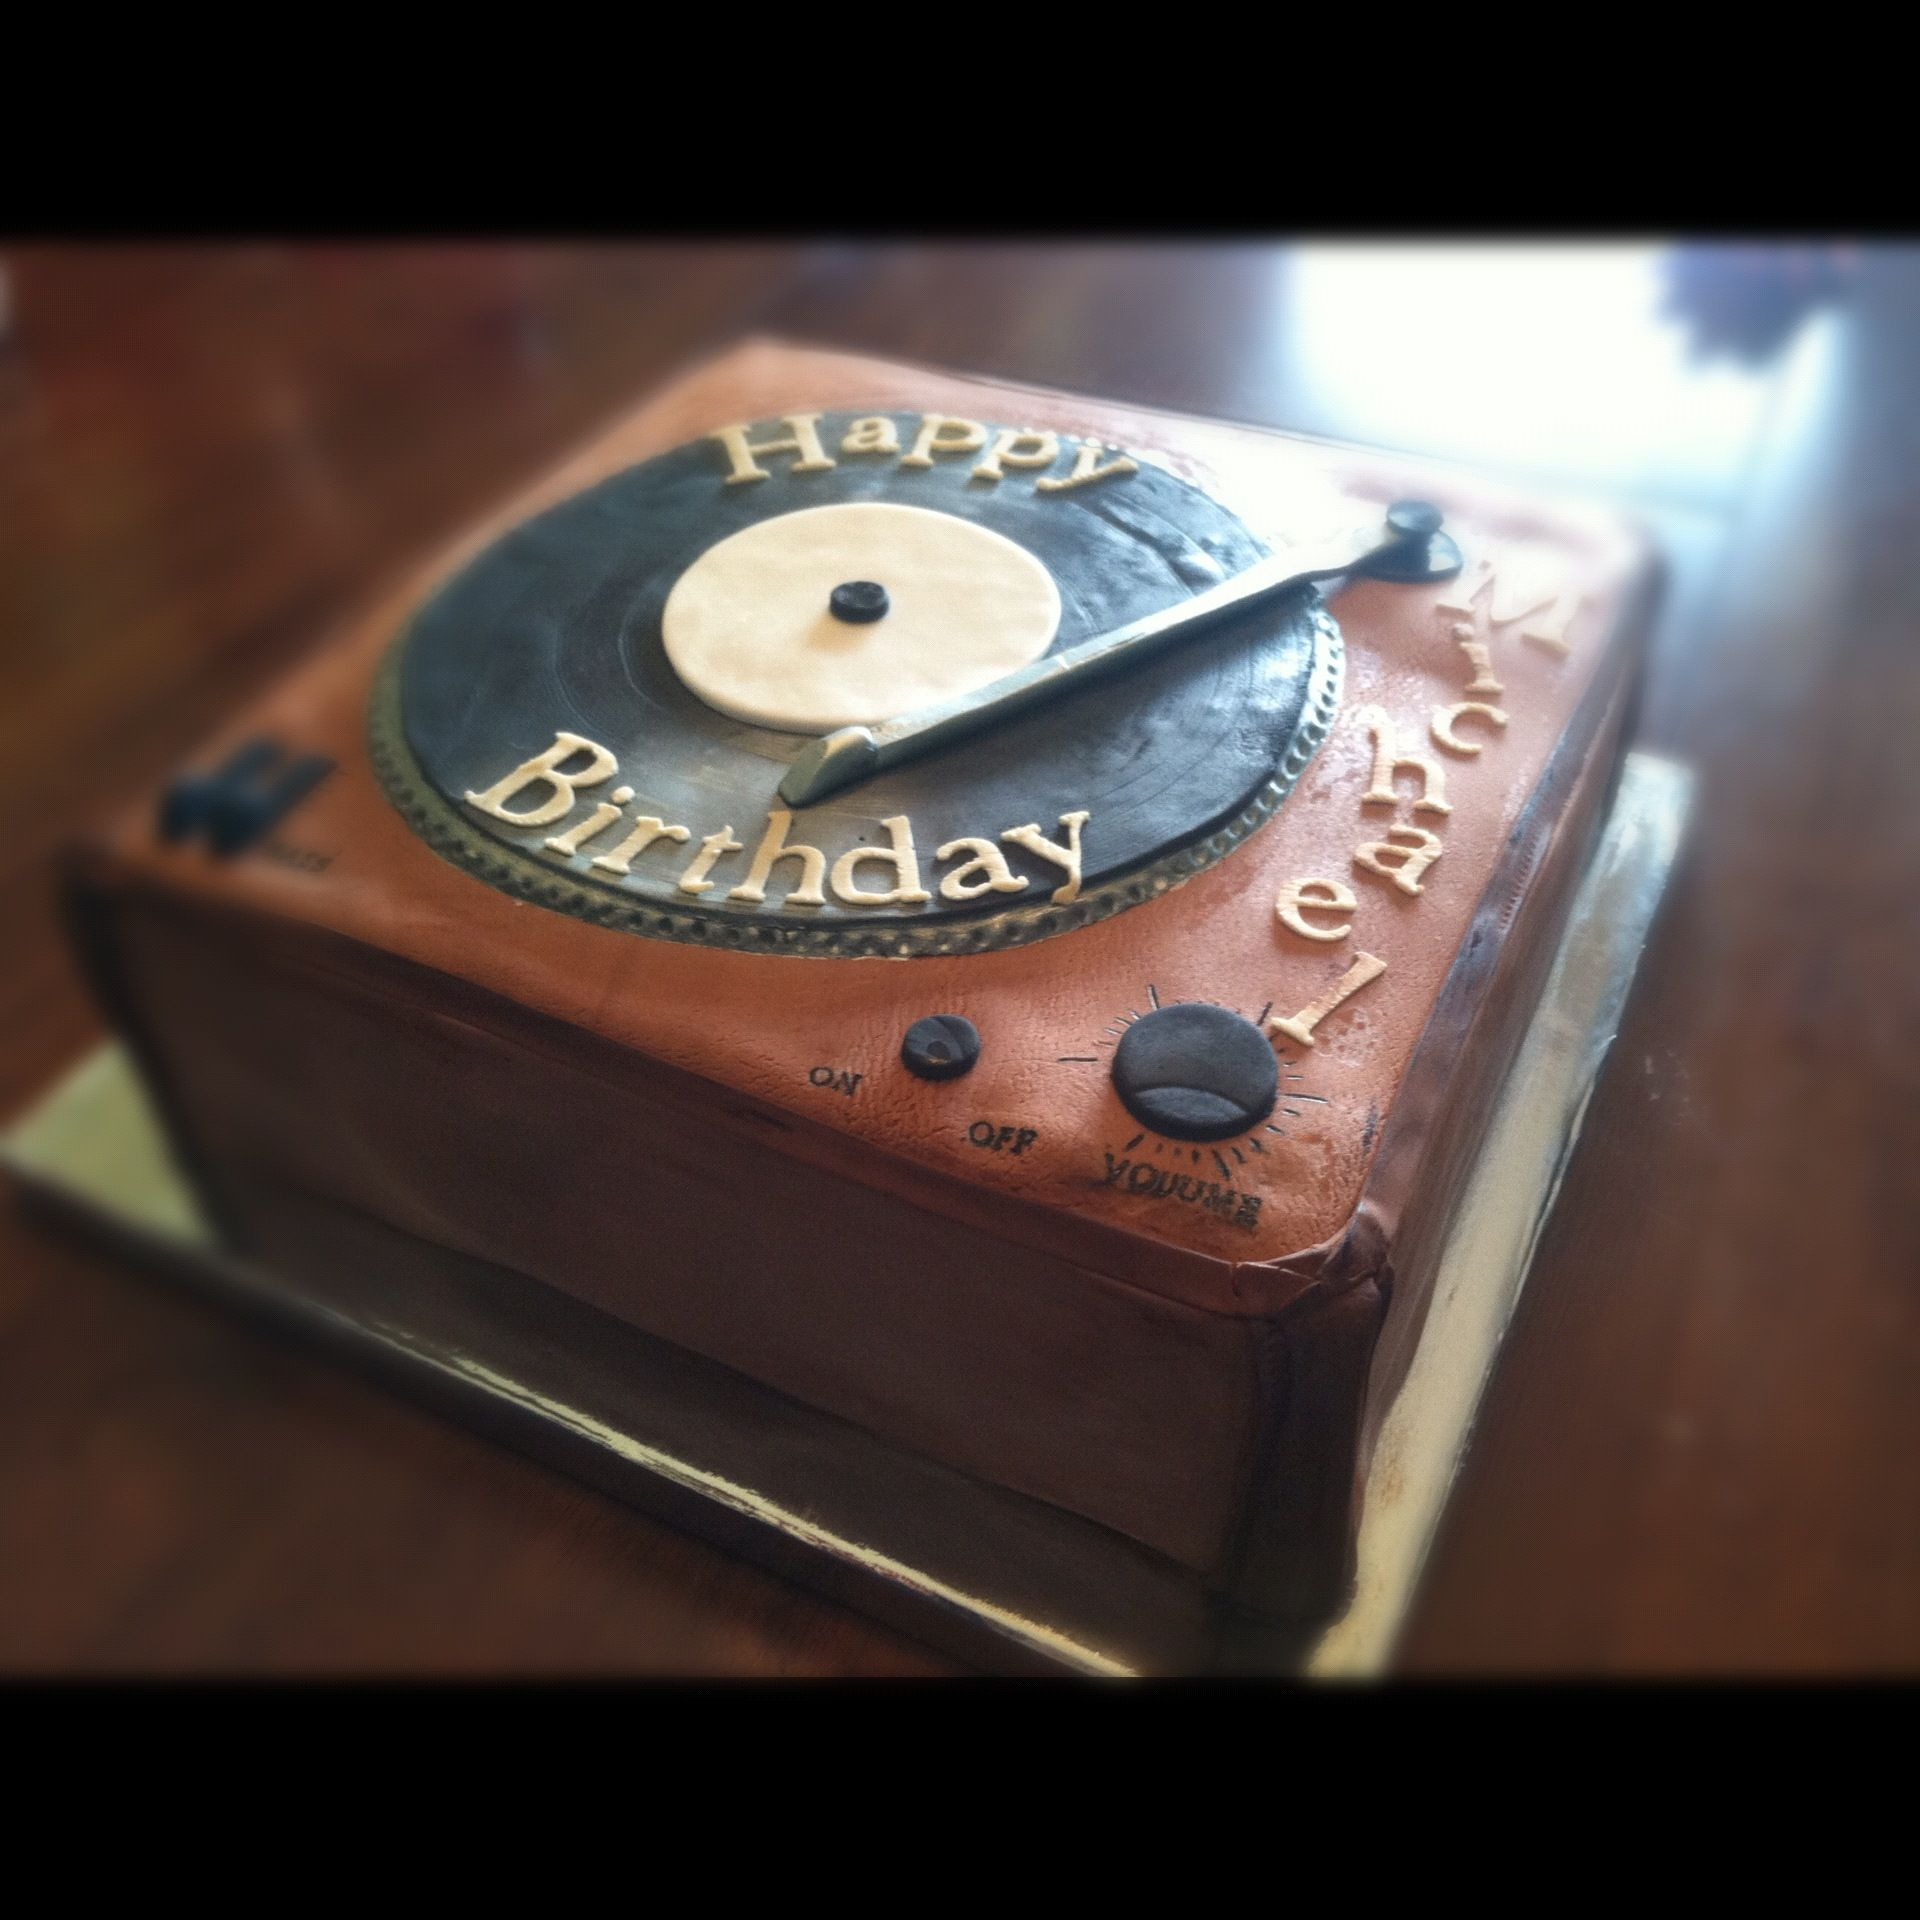 Vinyl Record Player Birthday Cake Or Whatever The Celebration May Be Cake Had This Made For My Hubby S Birthday Cake Pops Record Cake Birthday Cakes For Men